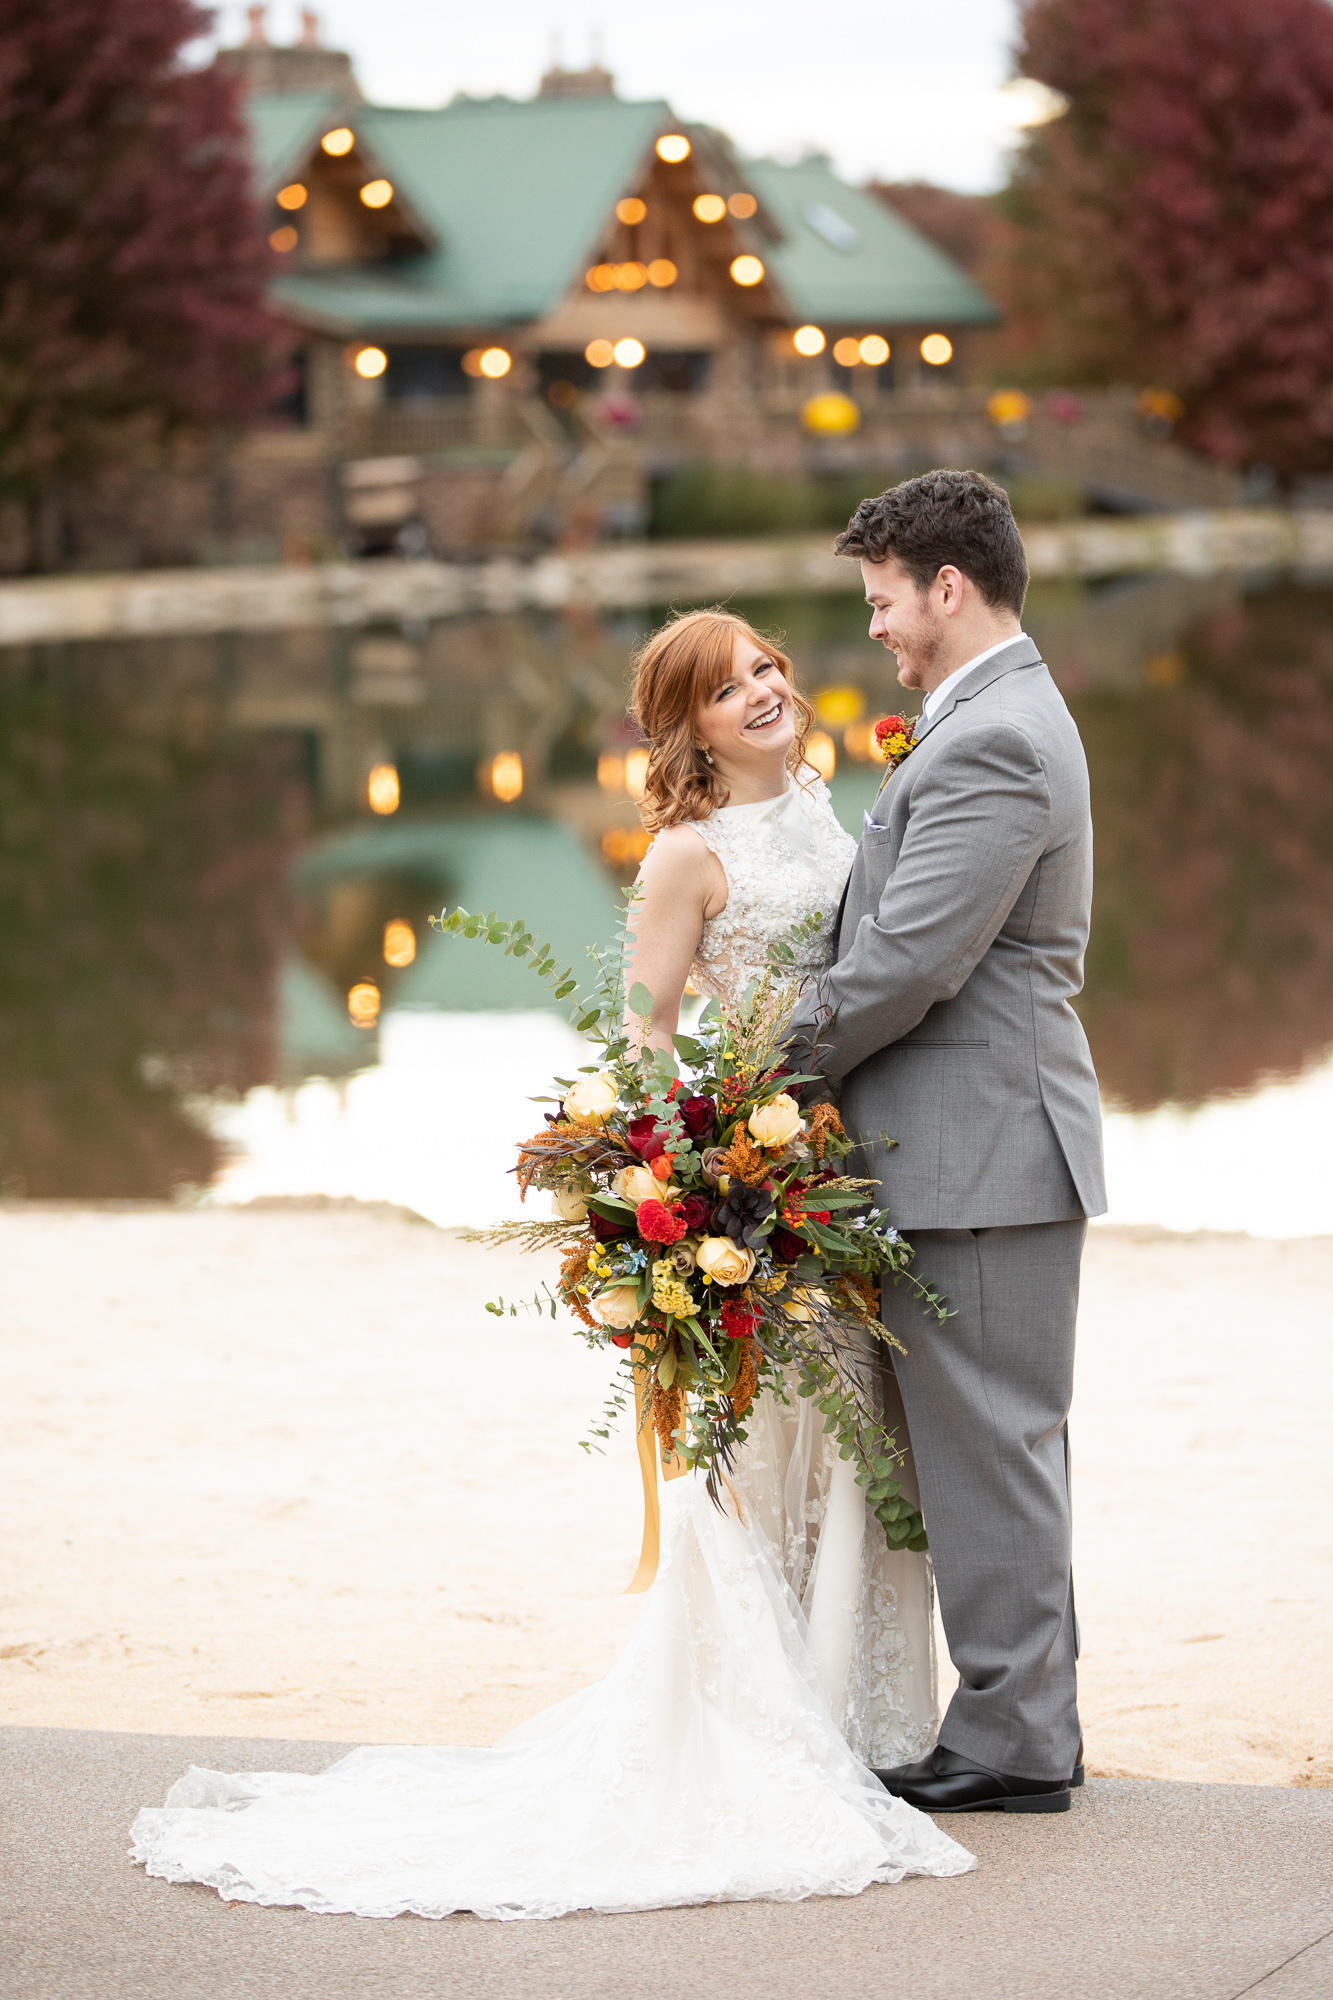 Bride and groom at autumn wedding styled shoot at The Gathering Place.